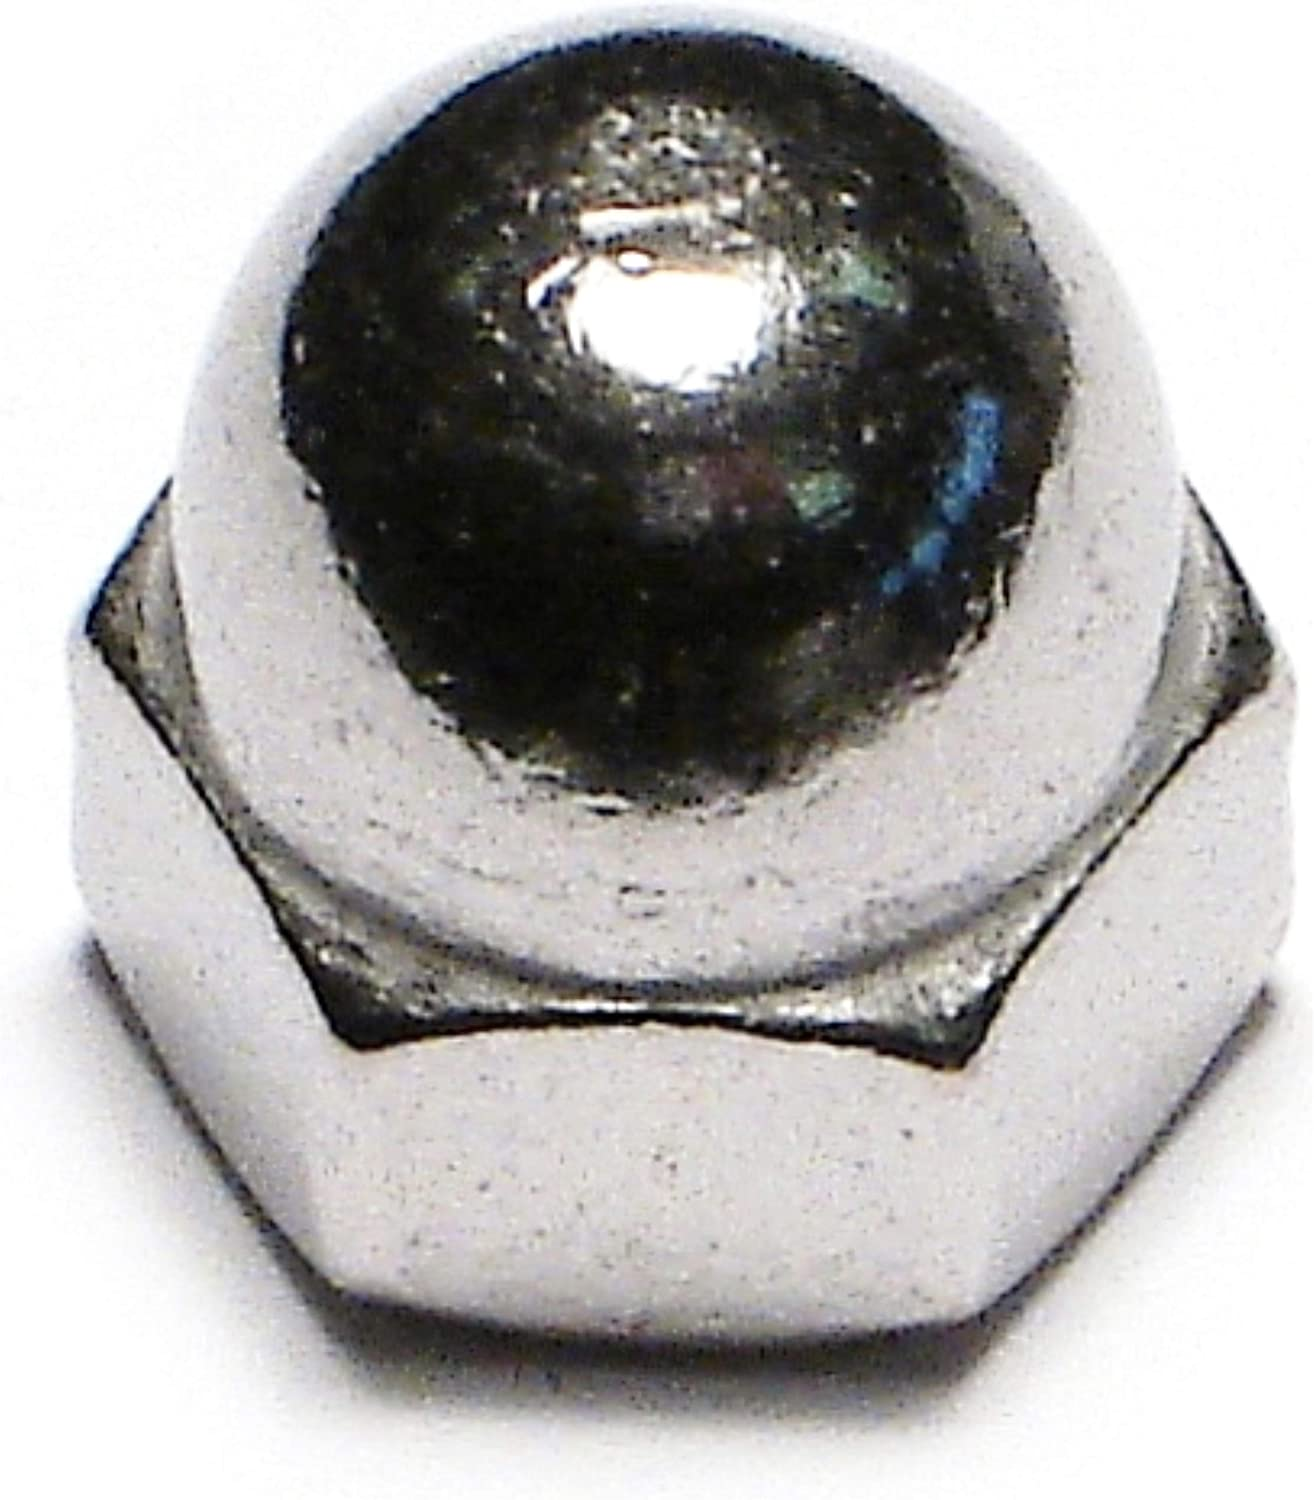 Piece-8 Midwest Fastener Corp 1//4-20 Hard-to-Find Fastener 014973435493 Acorn Nuts